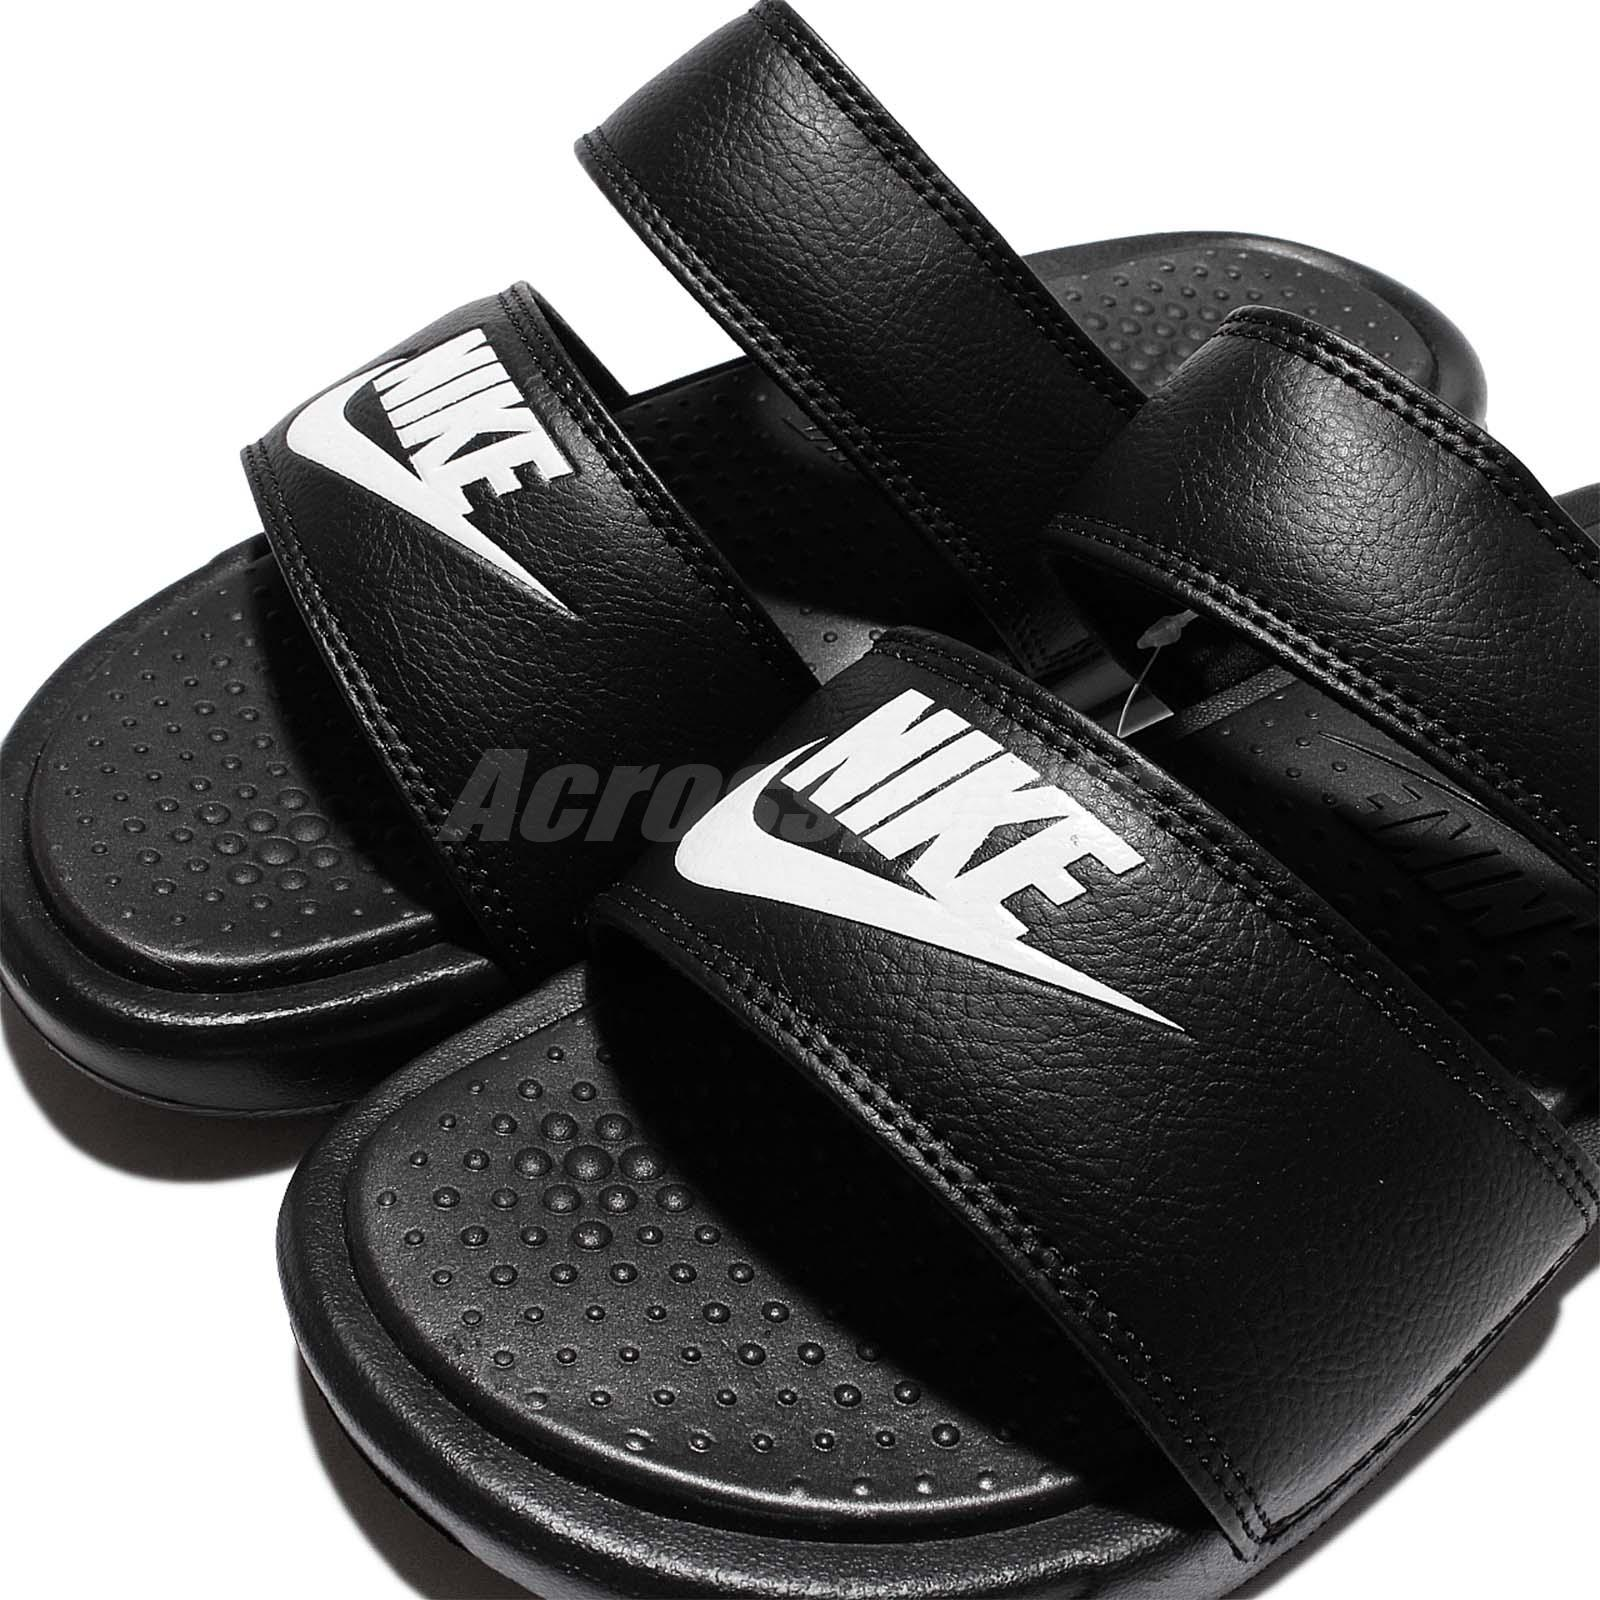 hot sale online e6025 9b708 Details about Wmns Nike Benassi Duo Ultra Slide Sandal Black White Womens  Slippers 819717-010